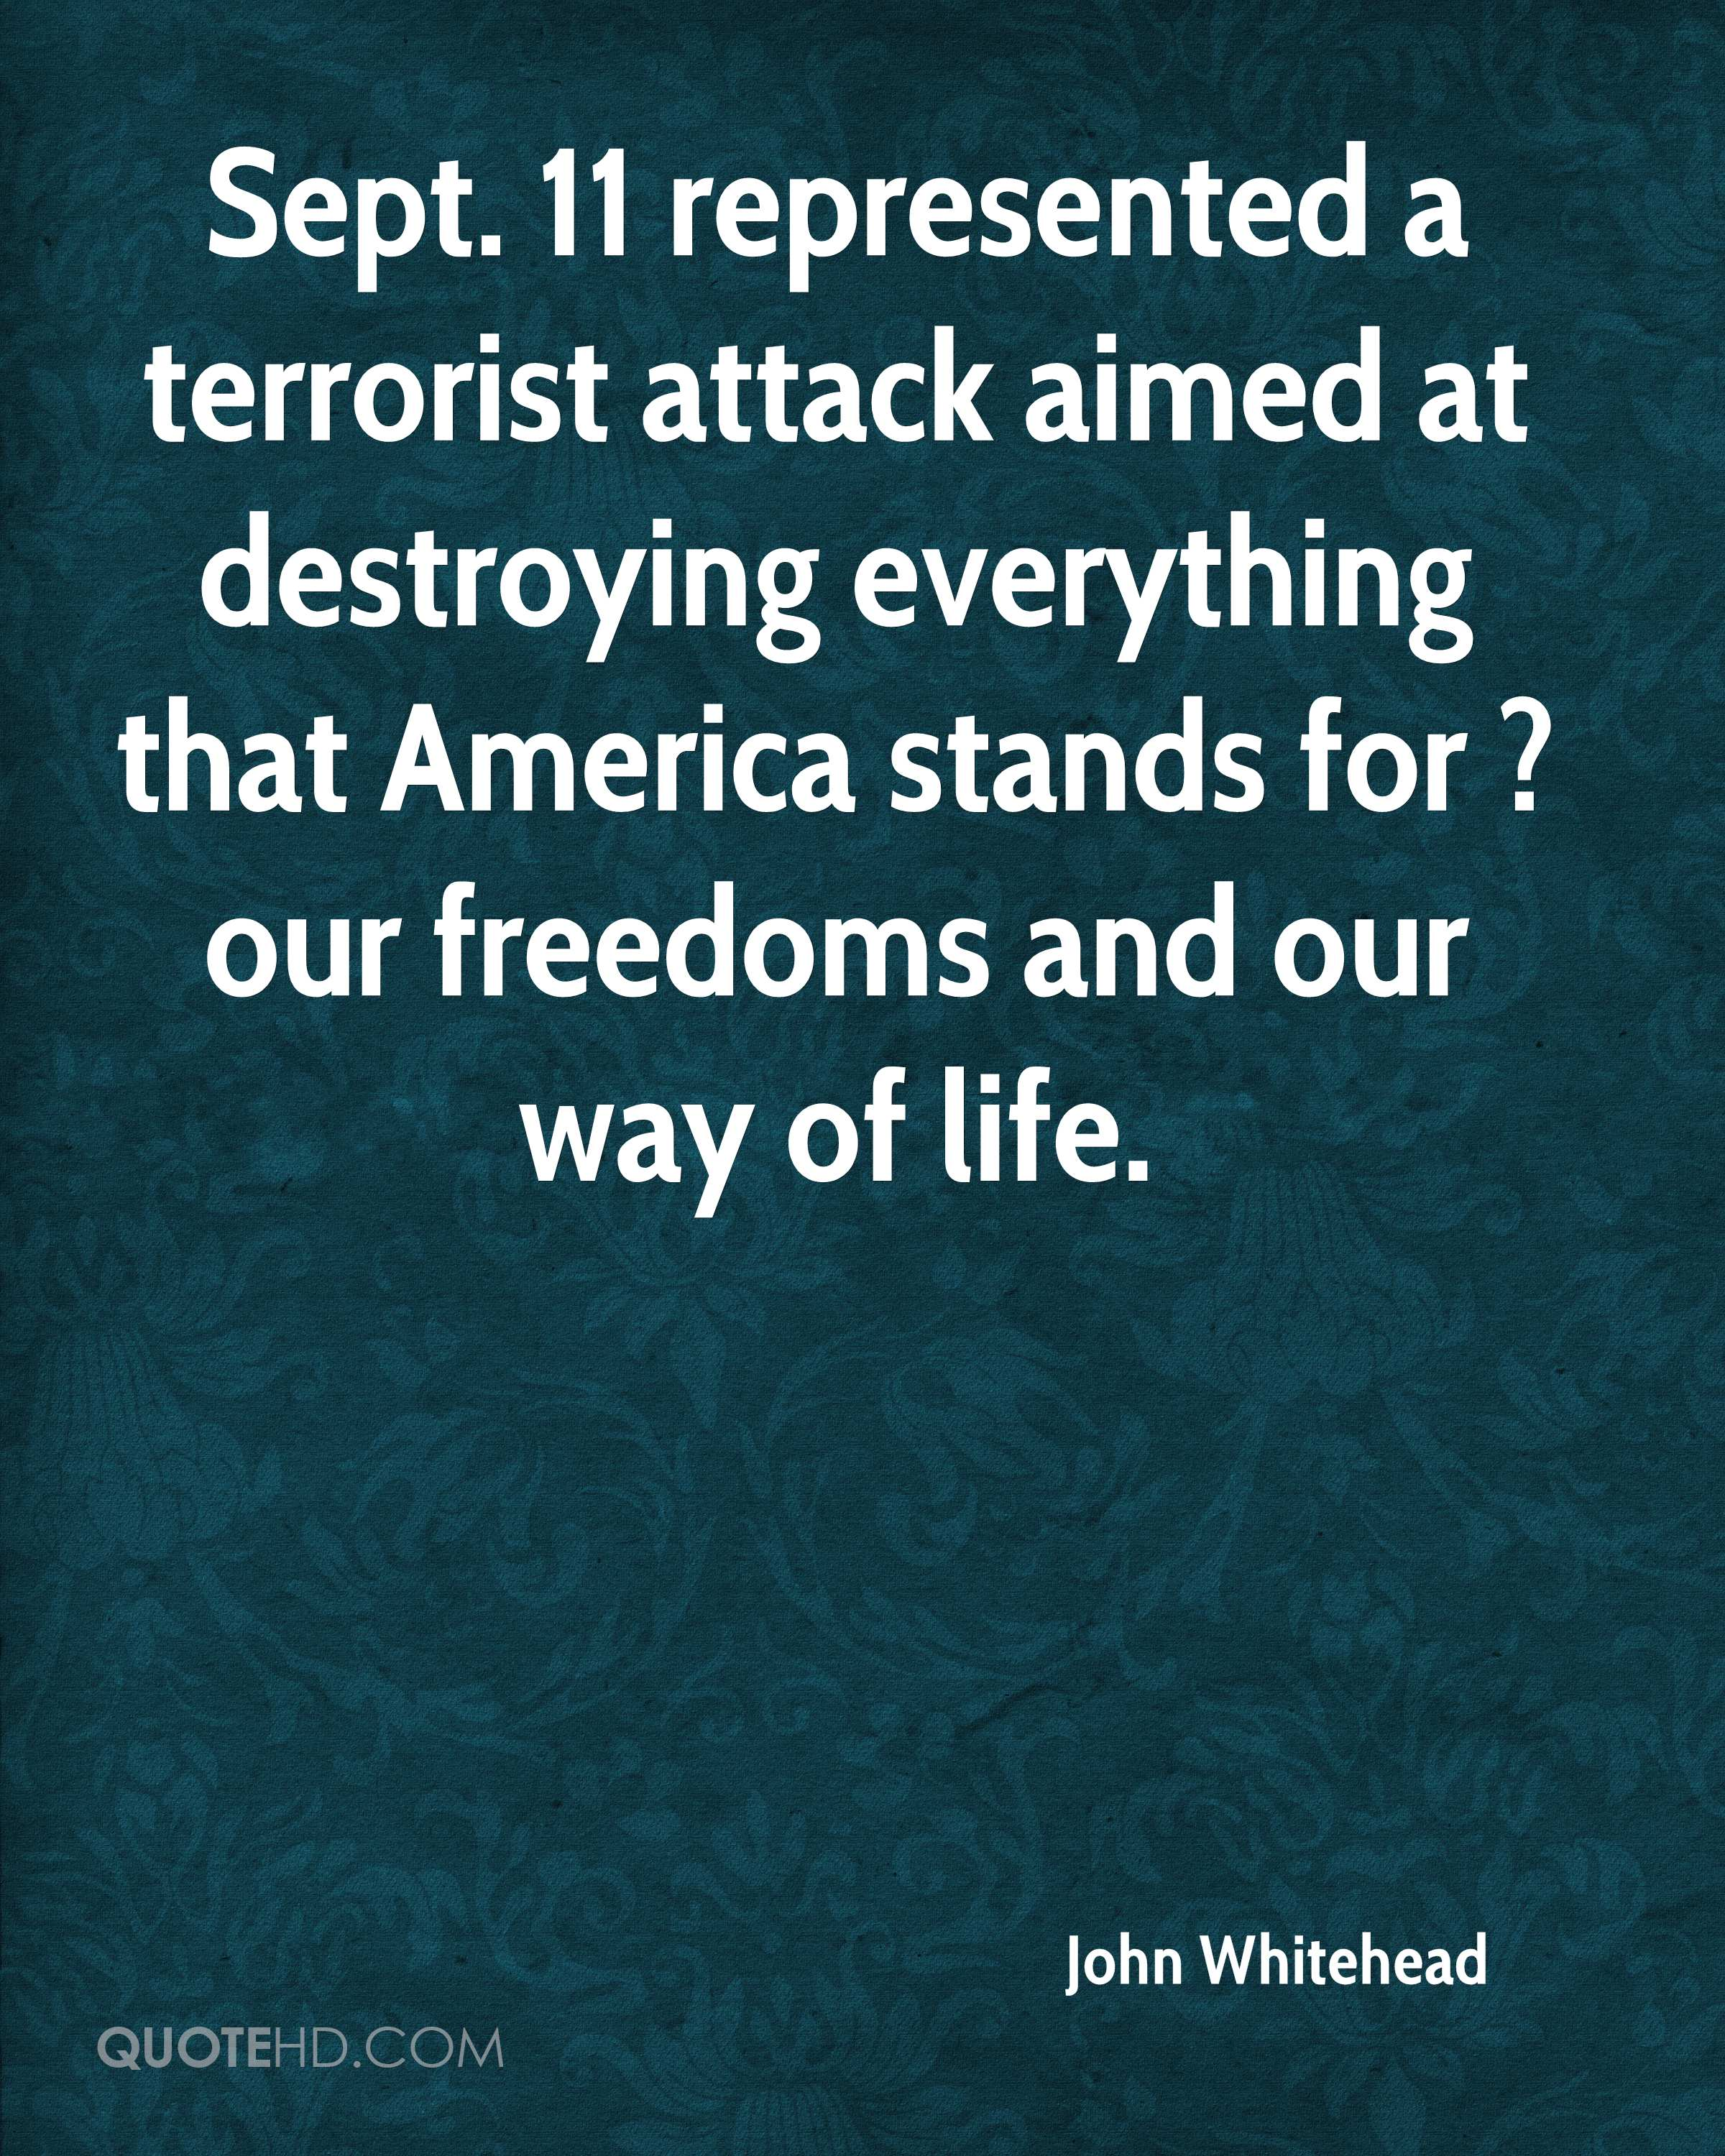 Sept. 11 represented a terrorist attack aimed at destroying everything that America stands for ? our freedoms and our way of life.